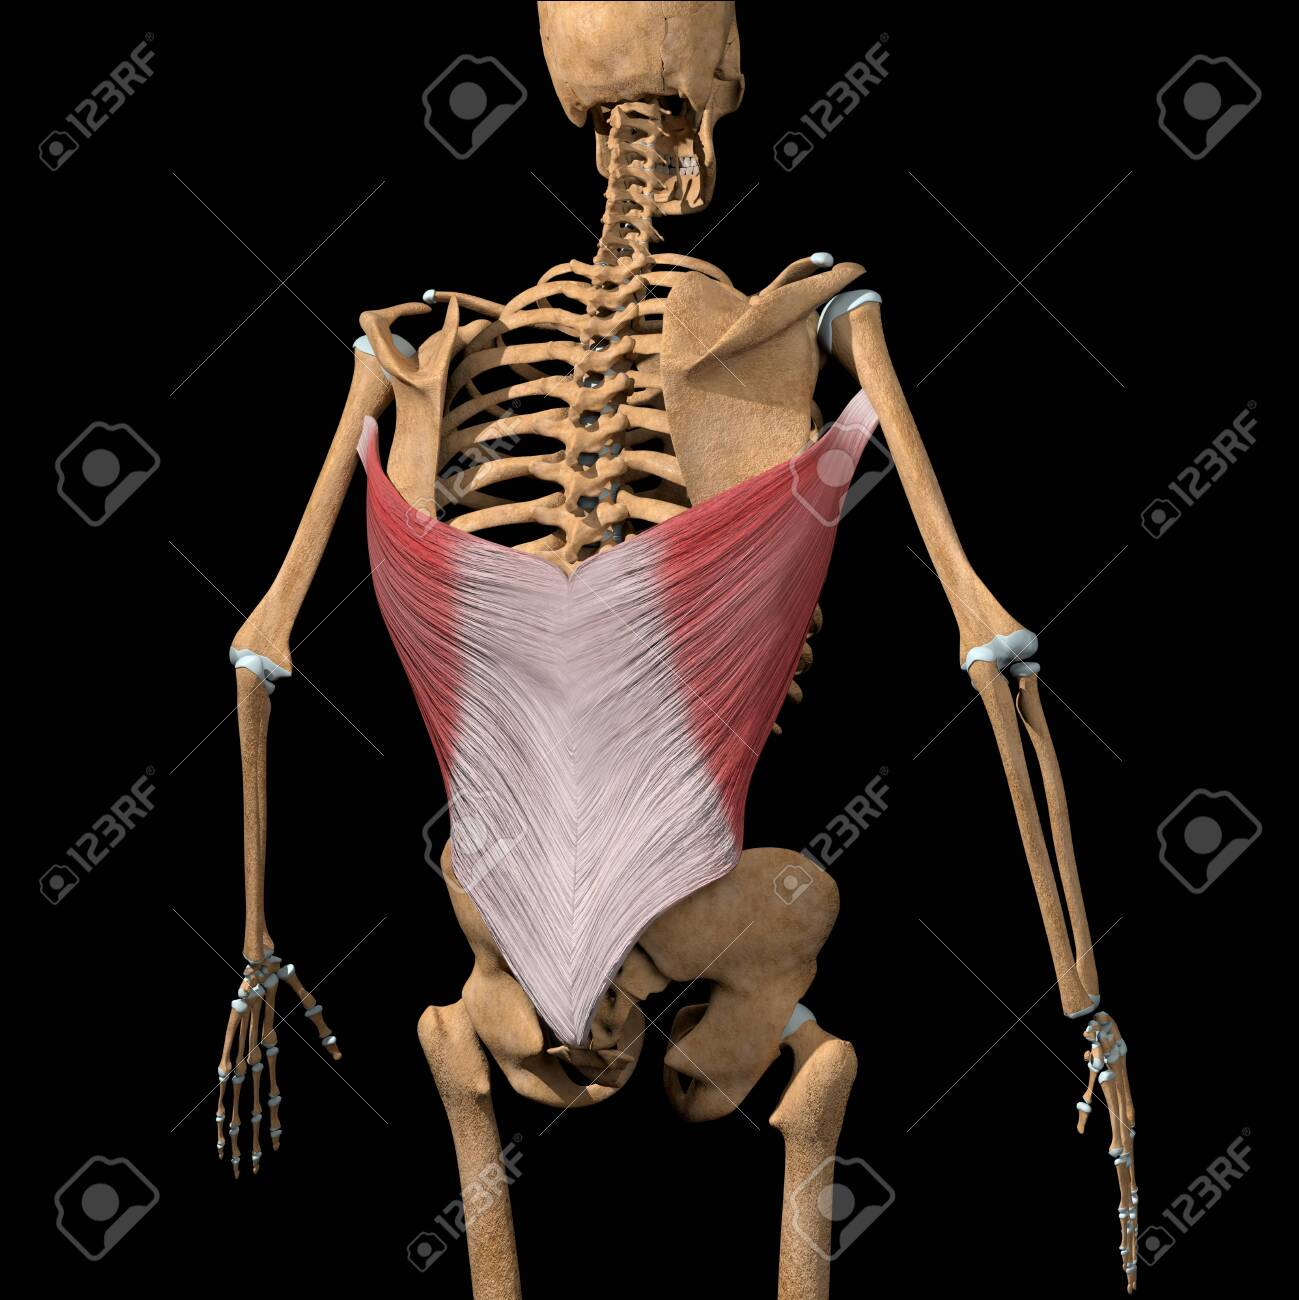 This 3d illustration shows the latissimus dorsi muscles on skeleton - 141690438